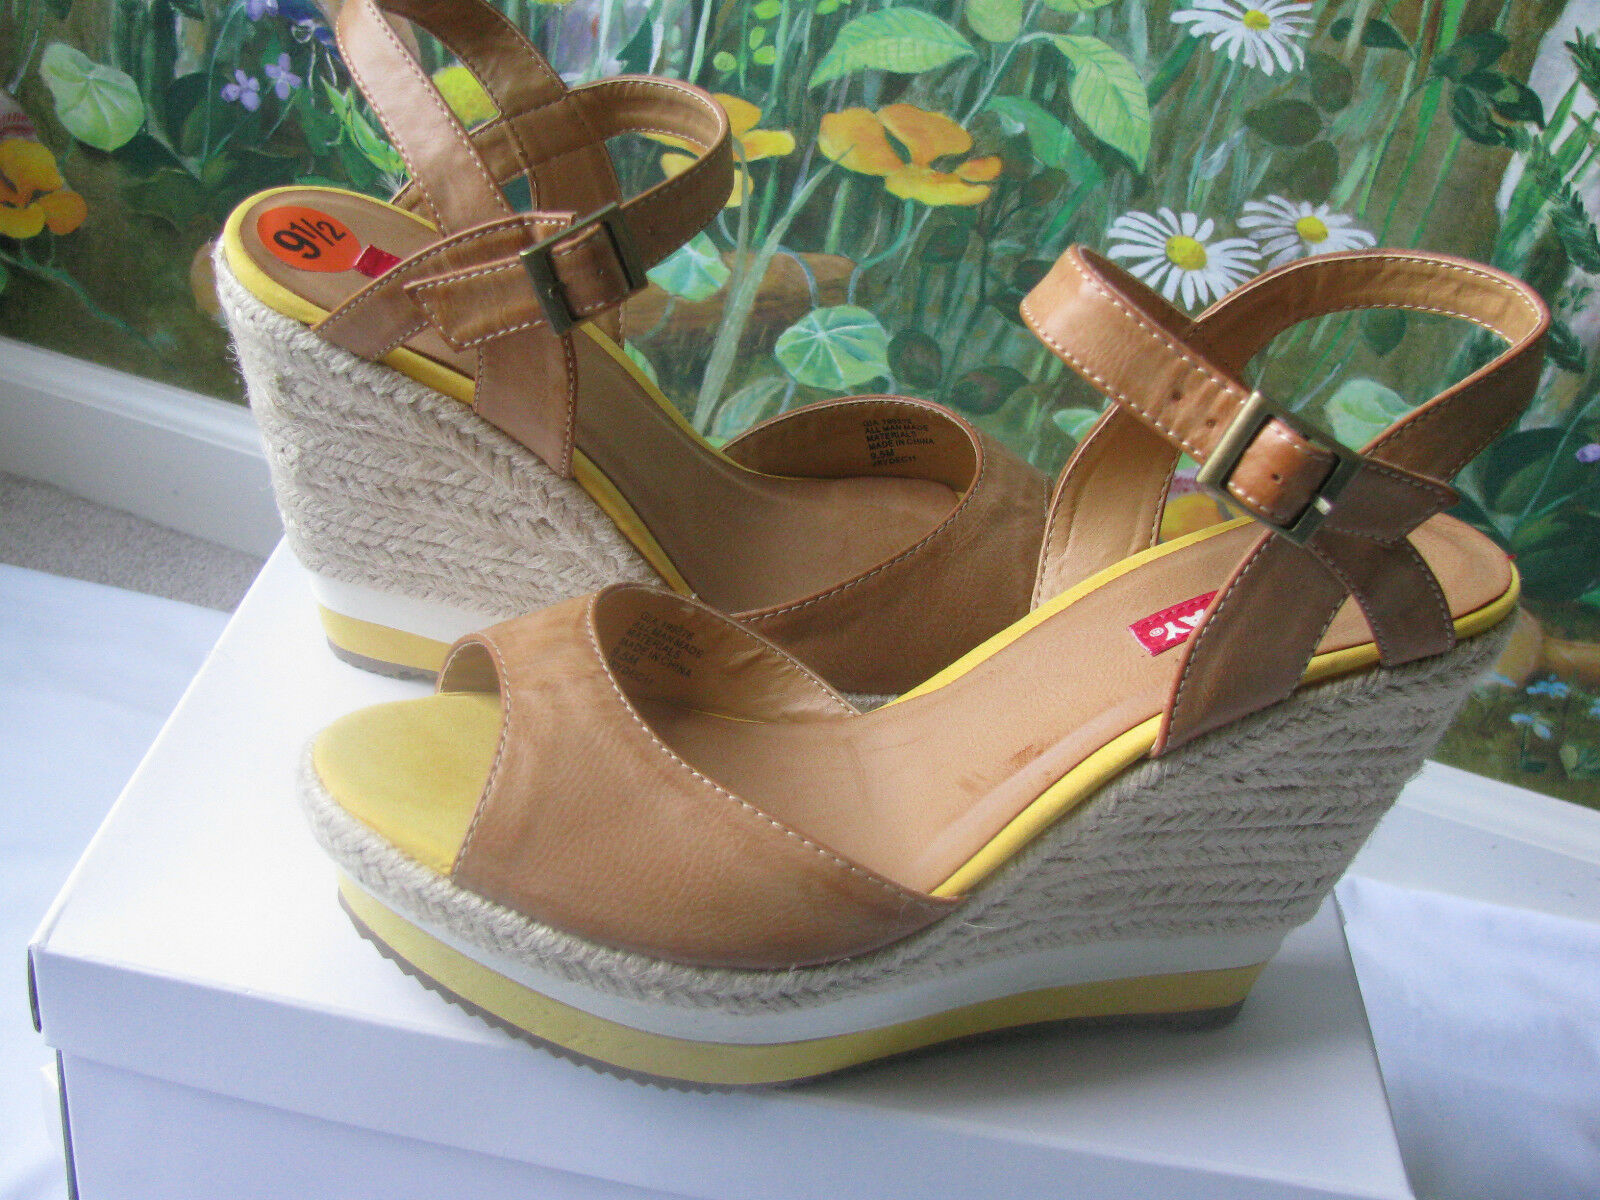 UNIONBAY Sandals Platforms   Wedge Women Sandals shoes size 9.5 New Without Box